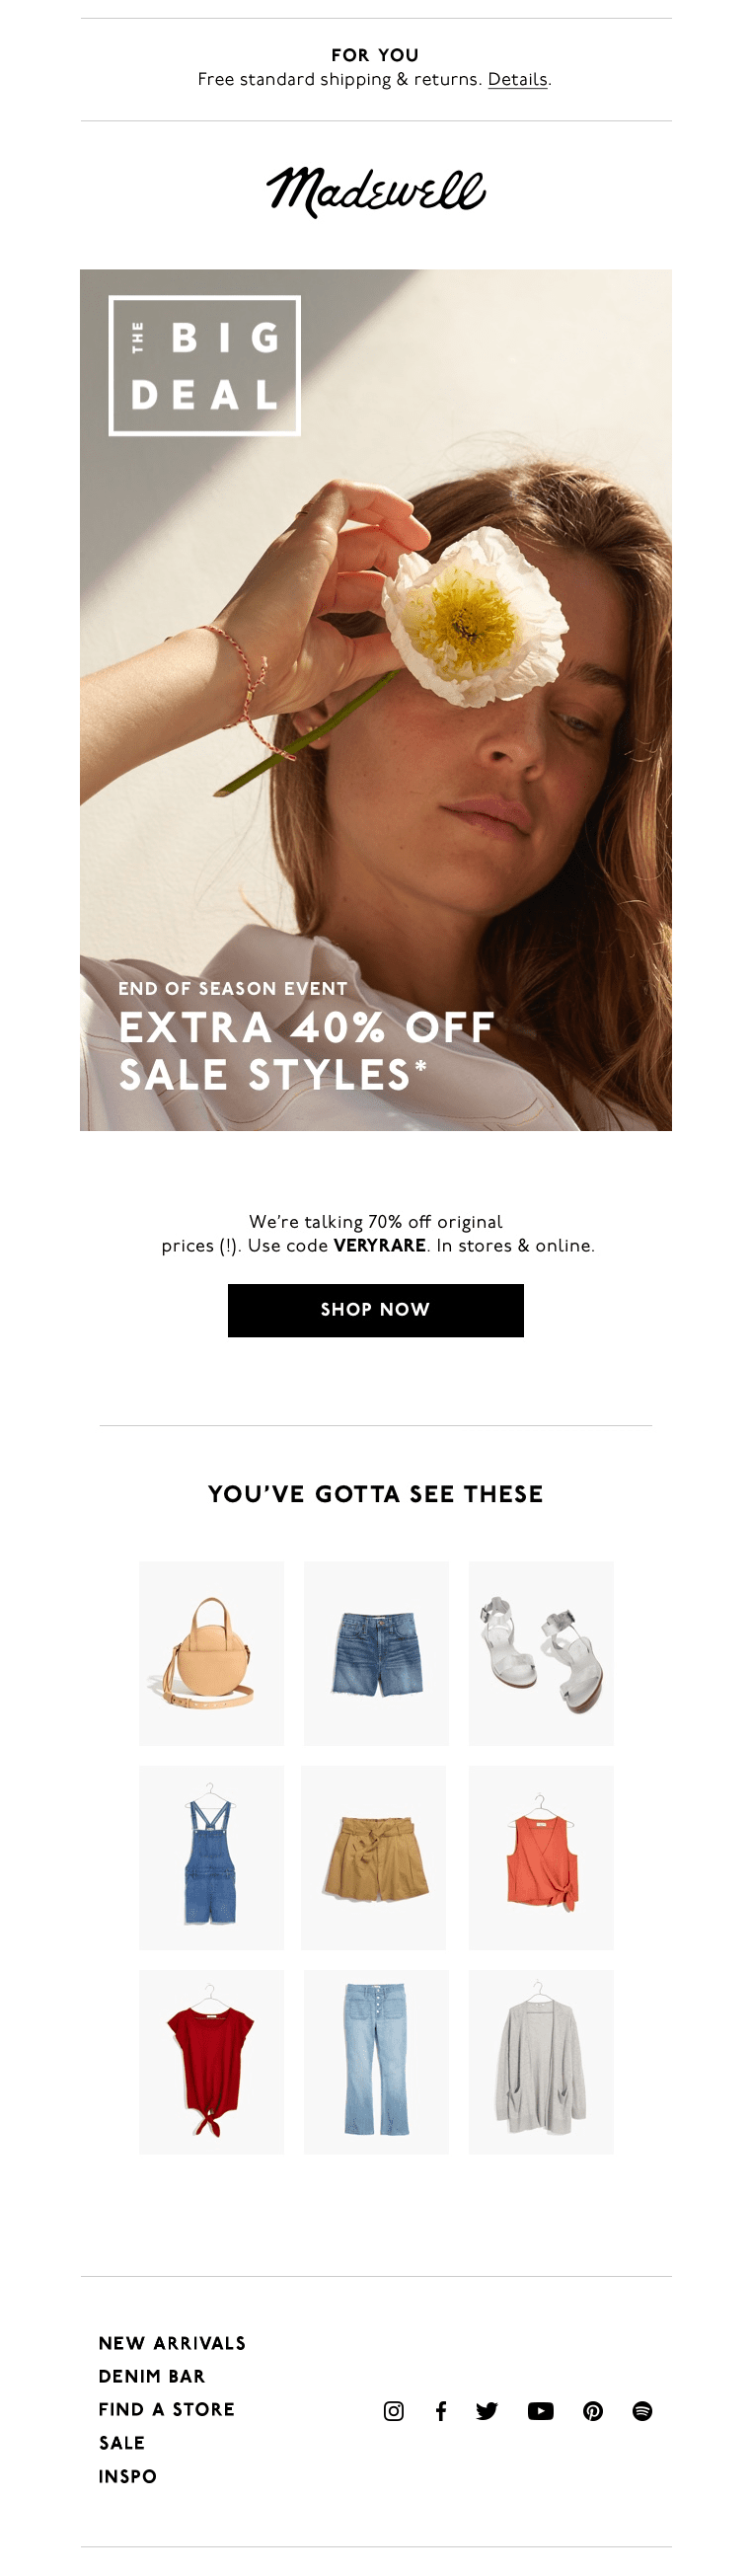 Sales email from Madewell